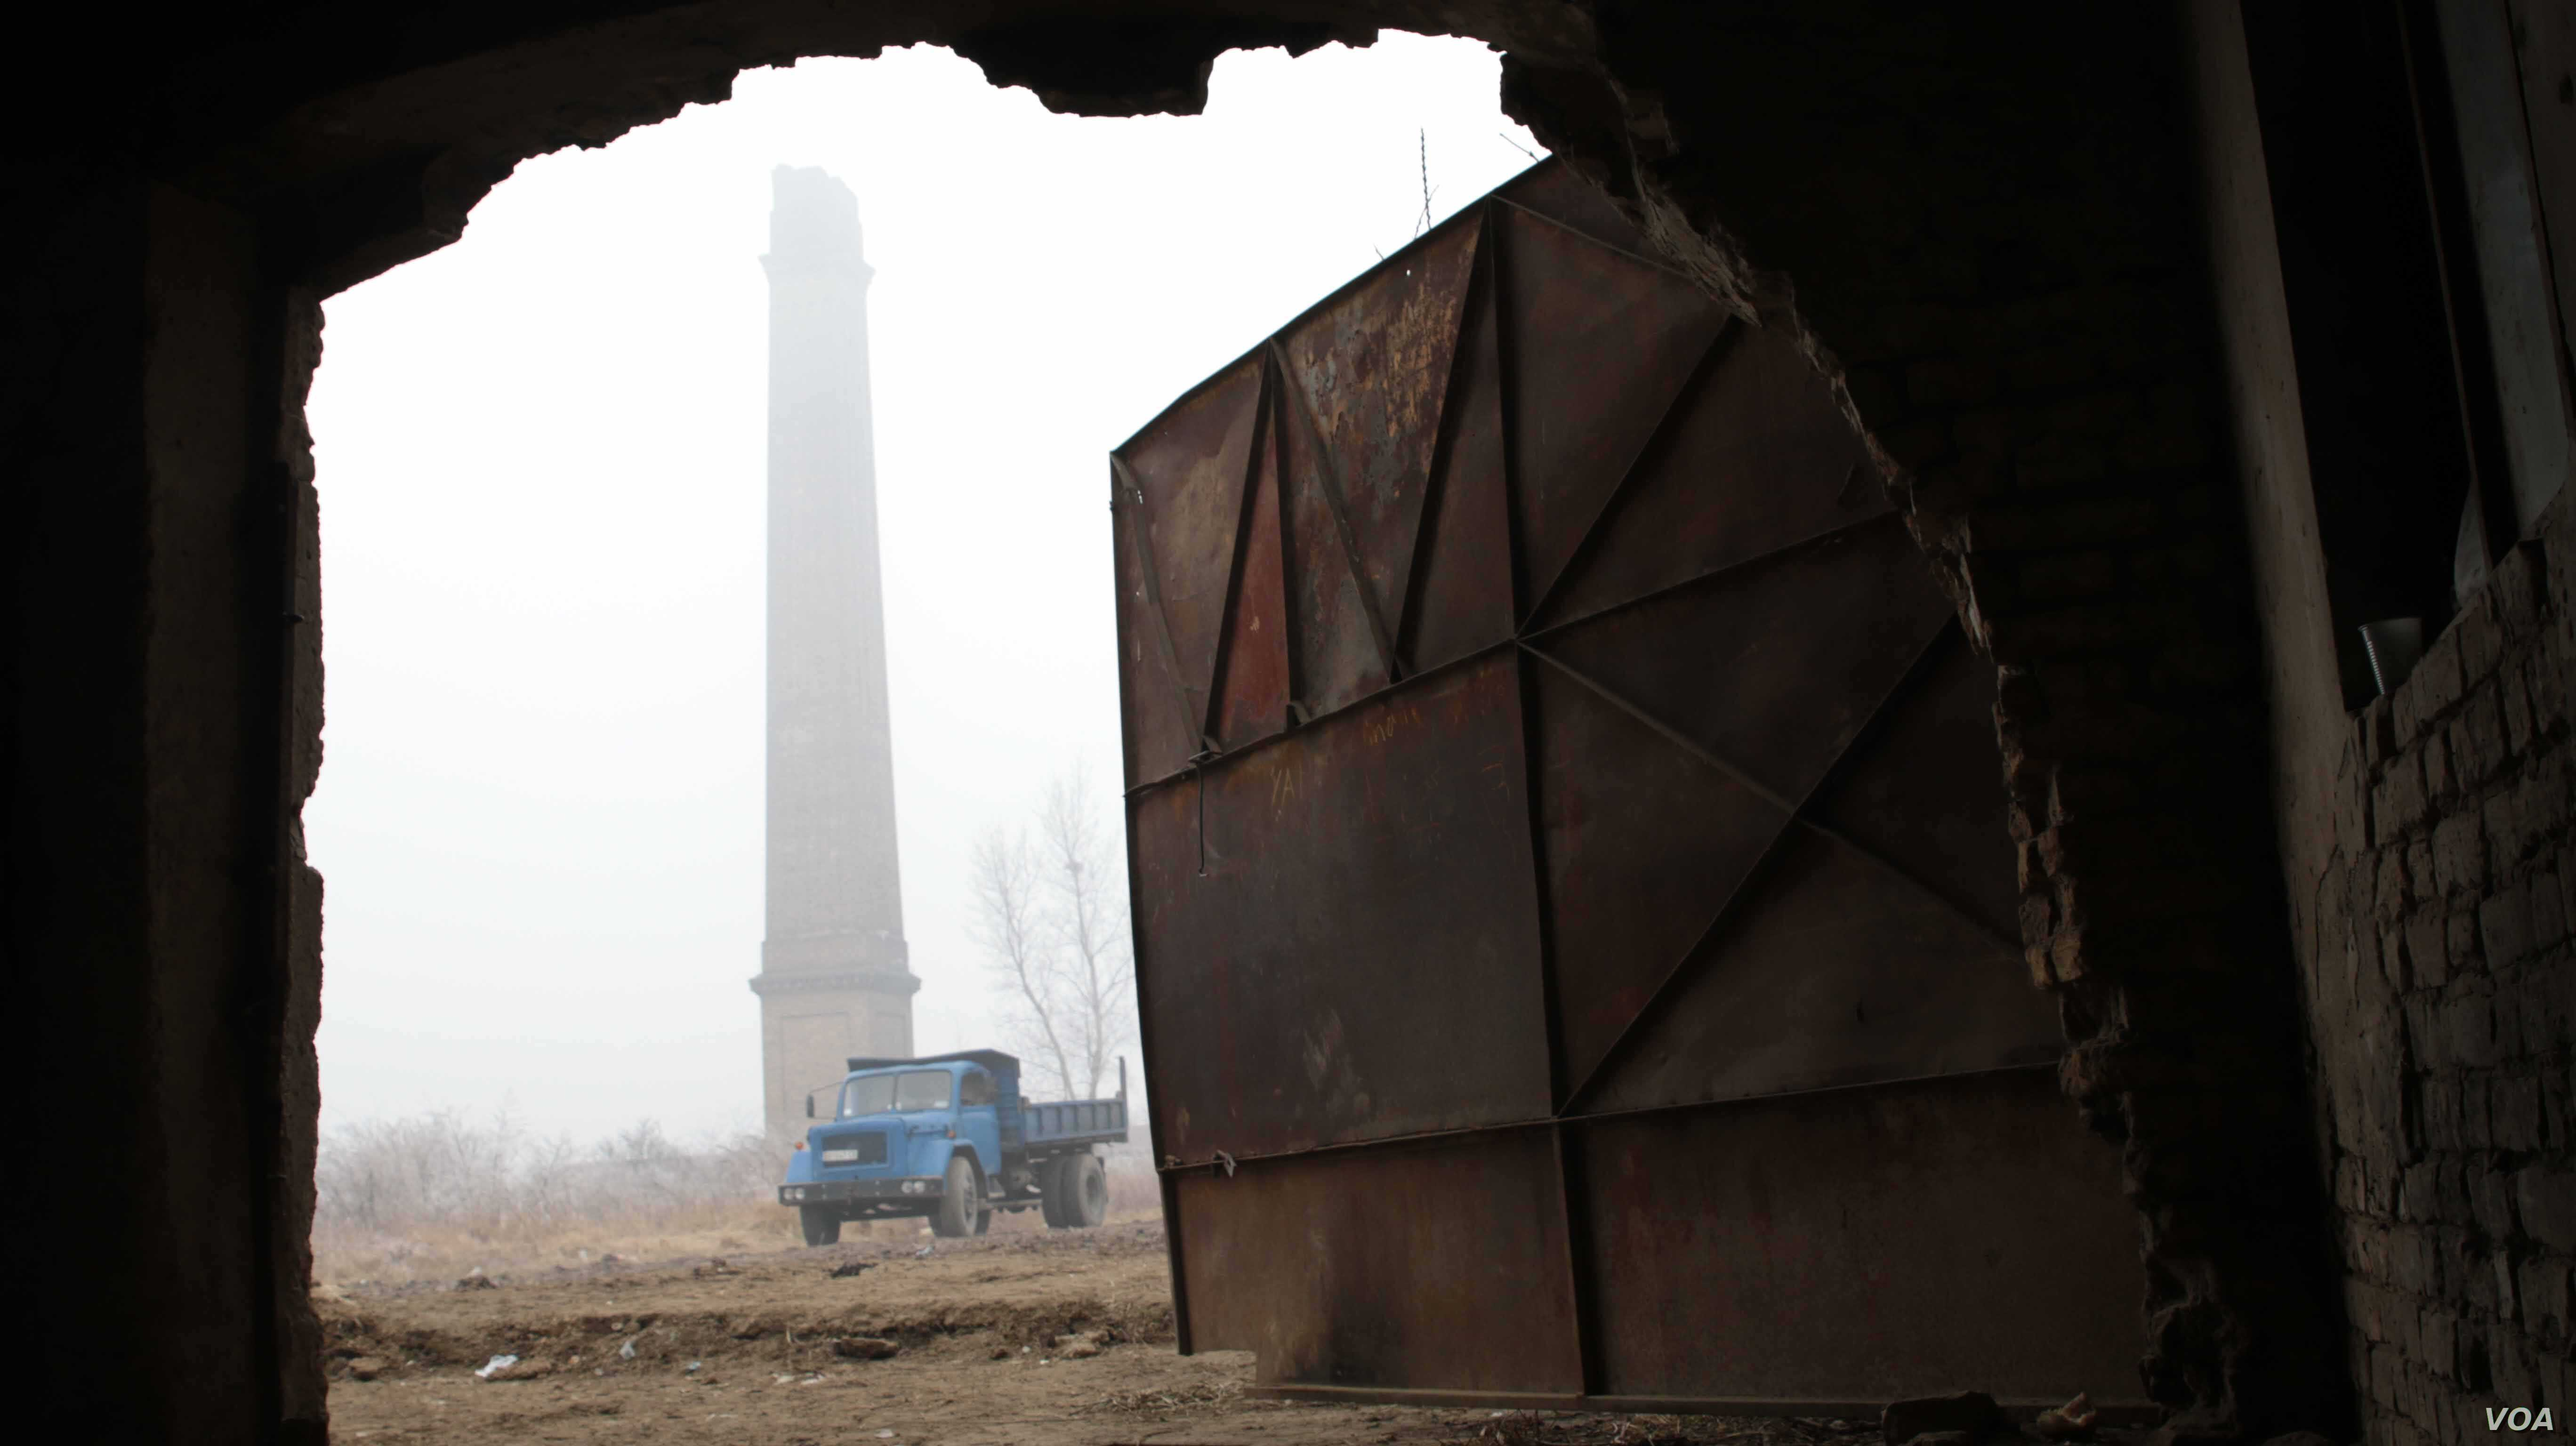 The brick factory is located next to the Serbian town of Subotica.(J. Owens for VOA)